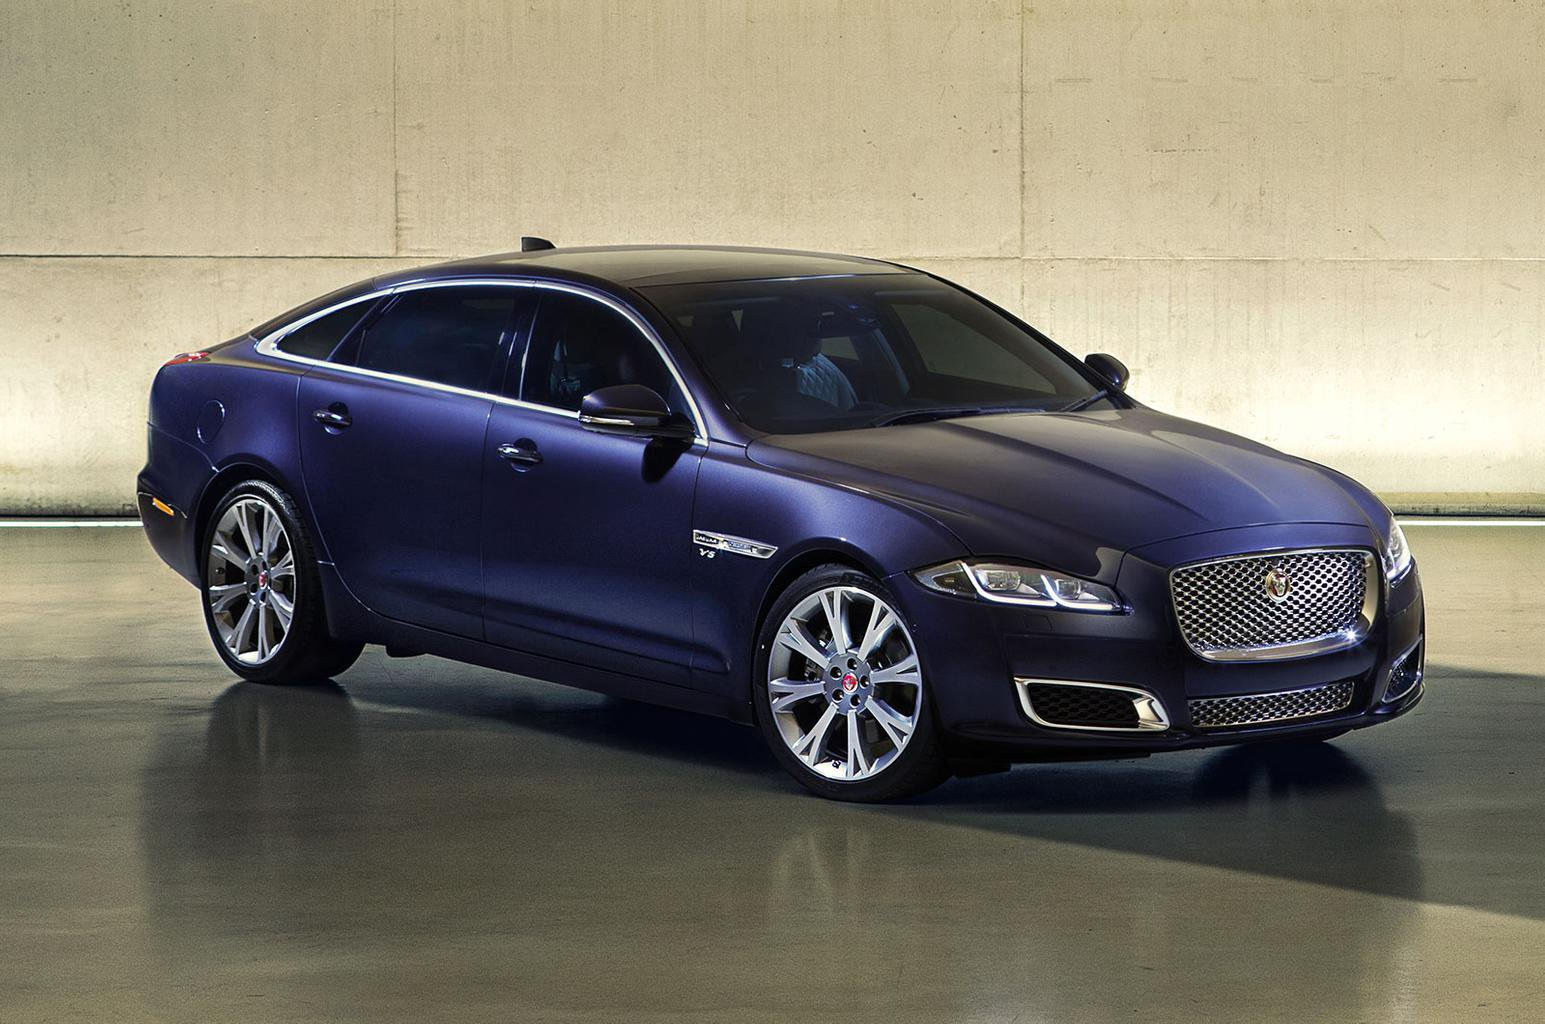 Jaguar XJ updated for 2016